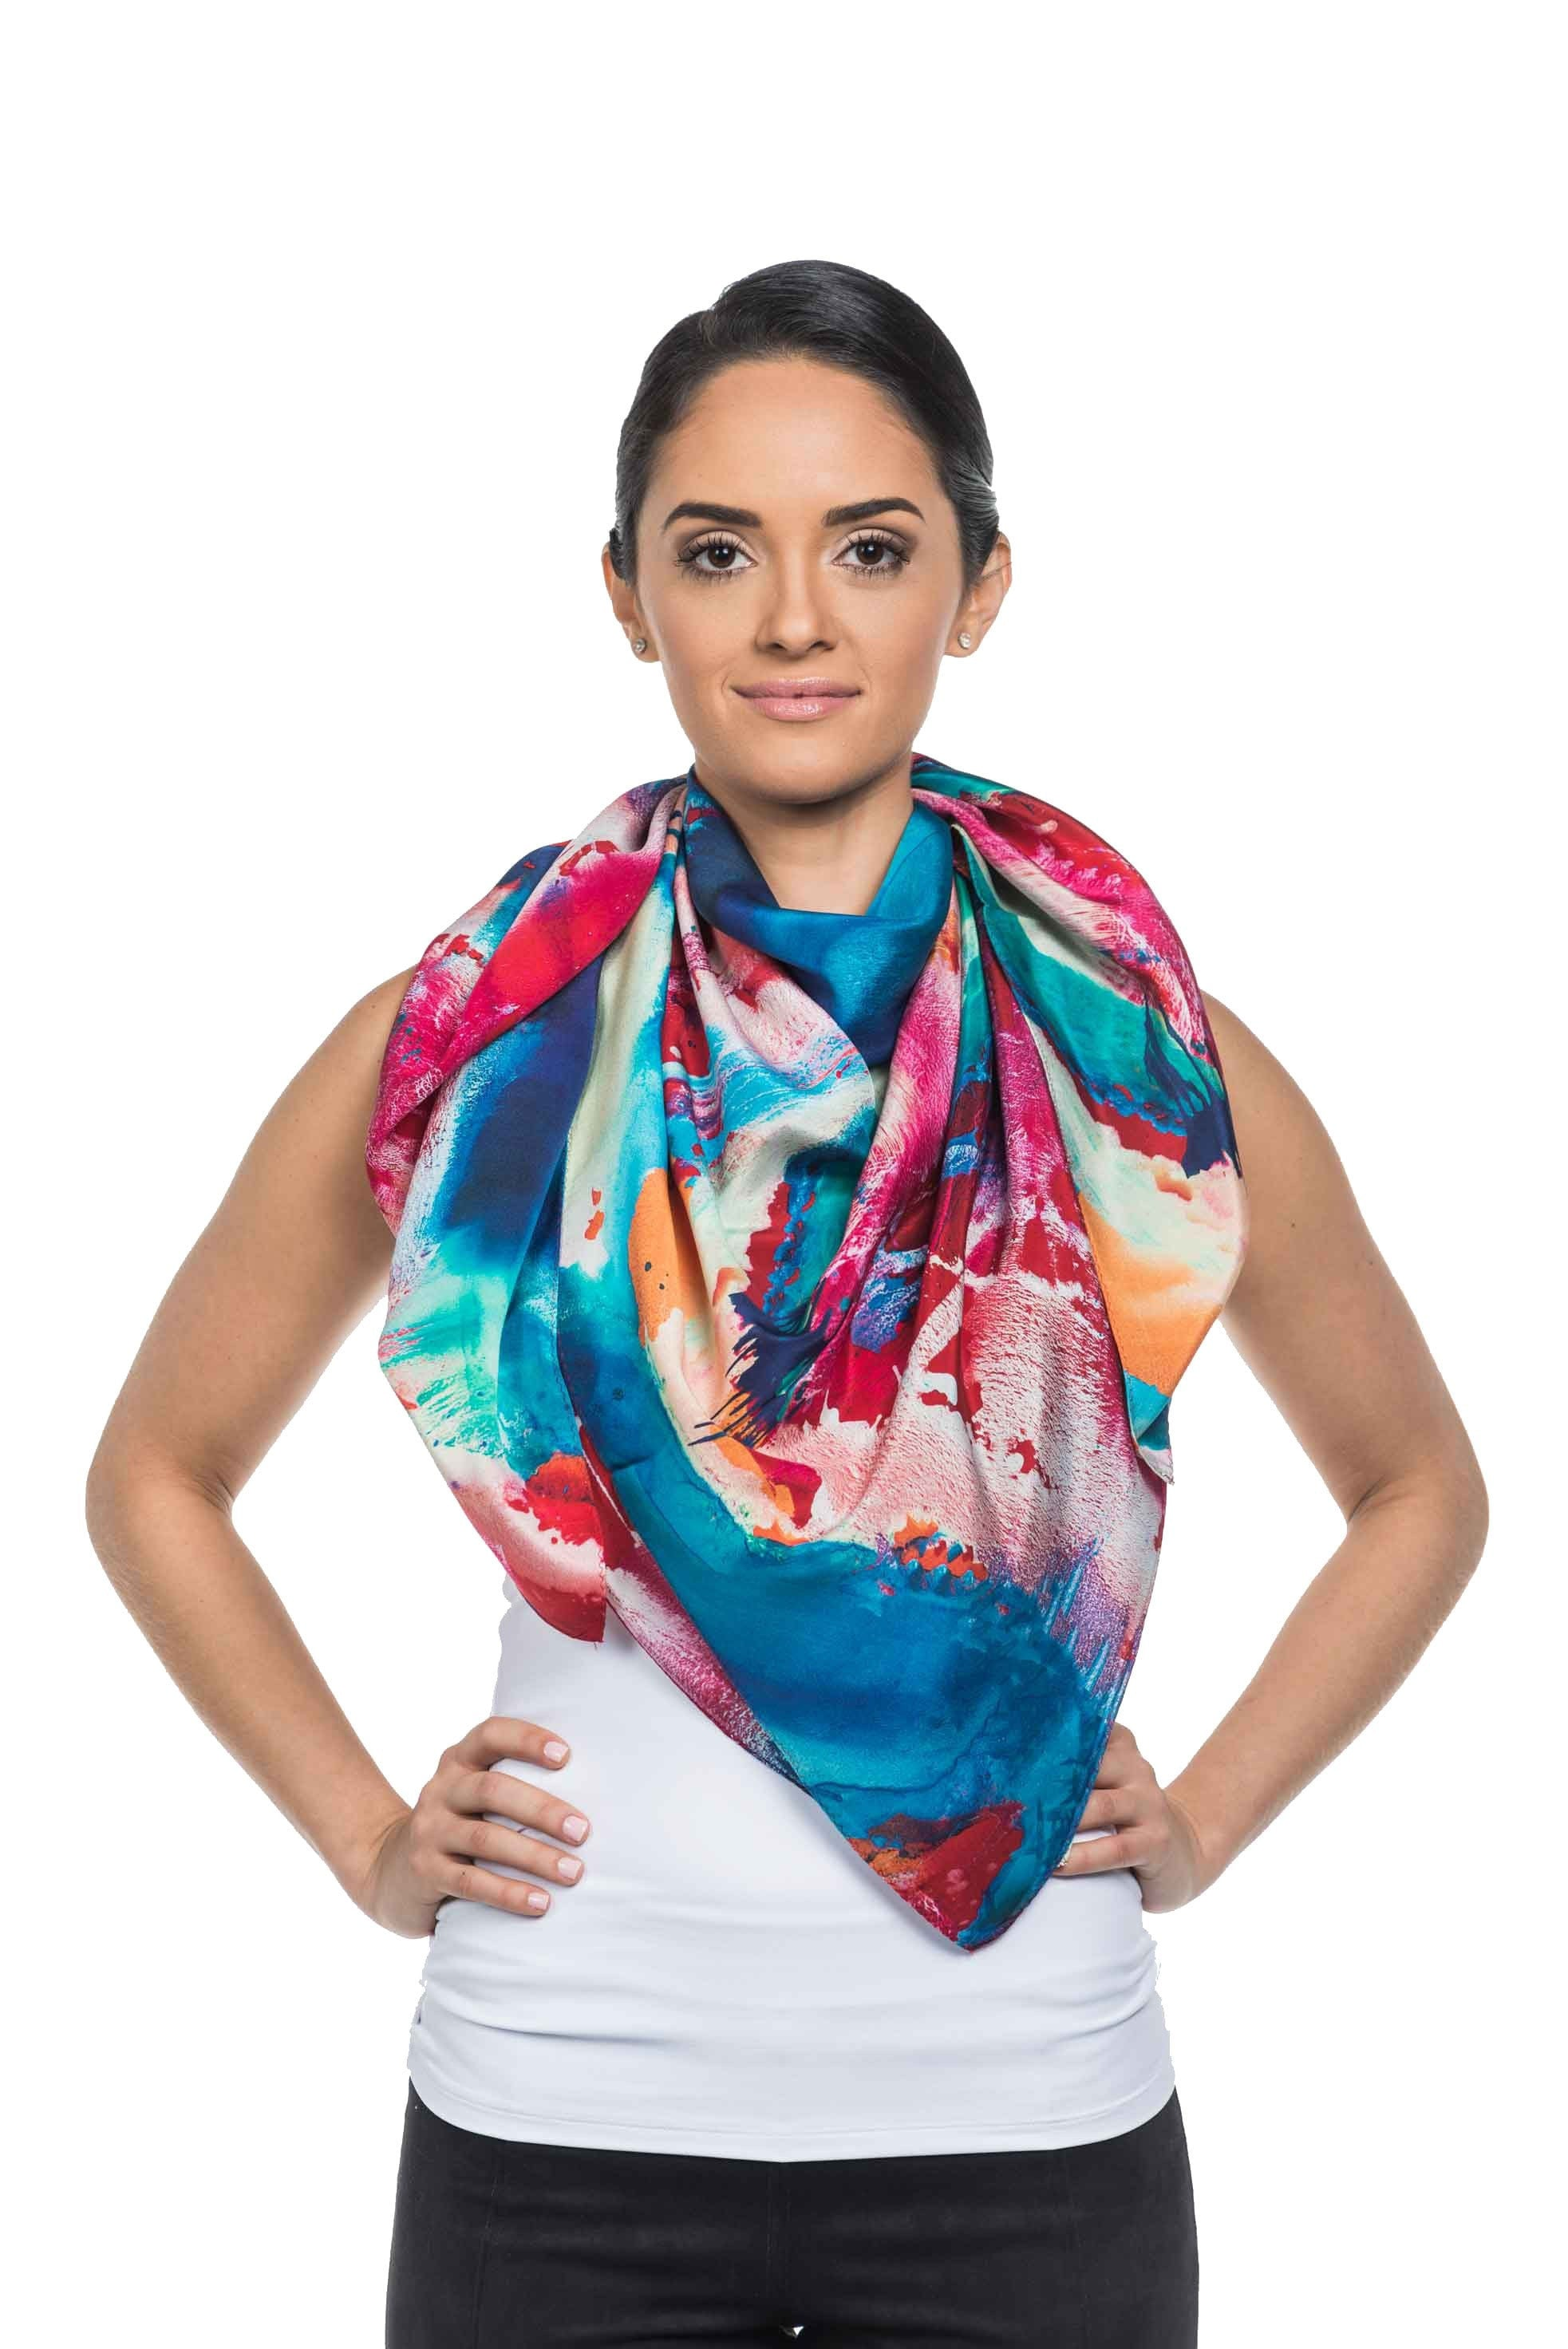 Hue Silk Scarf - Red Turquoise Print Scarves - artTECA